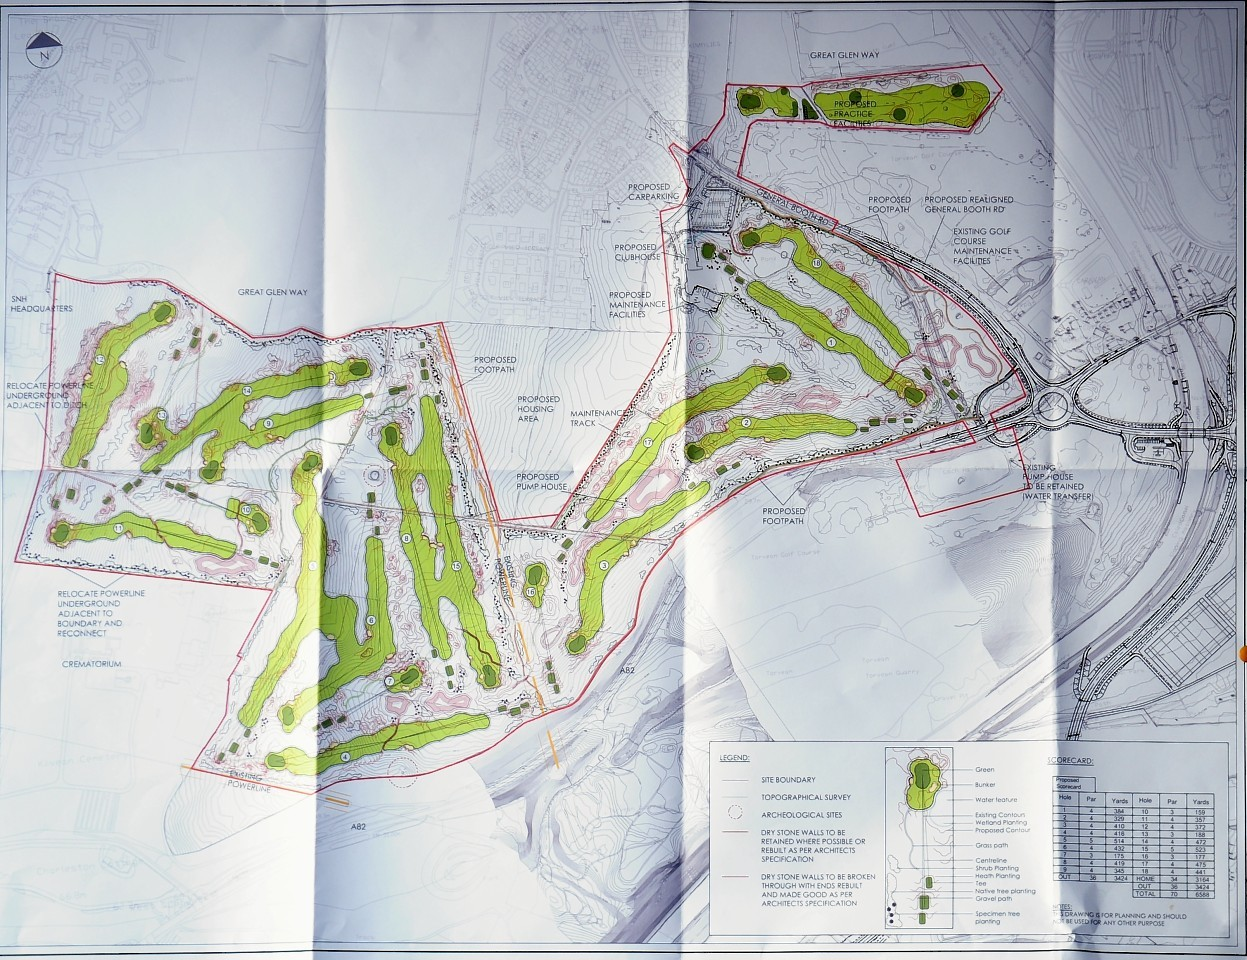 The plans for Torvean Golf Course